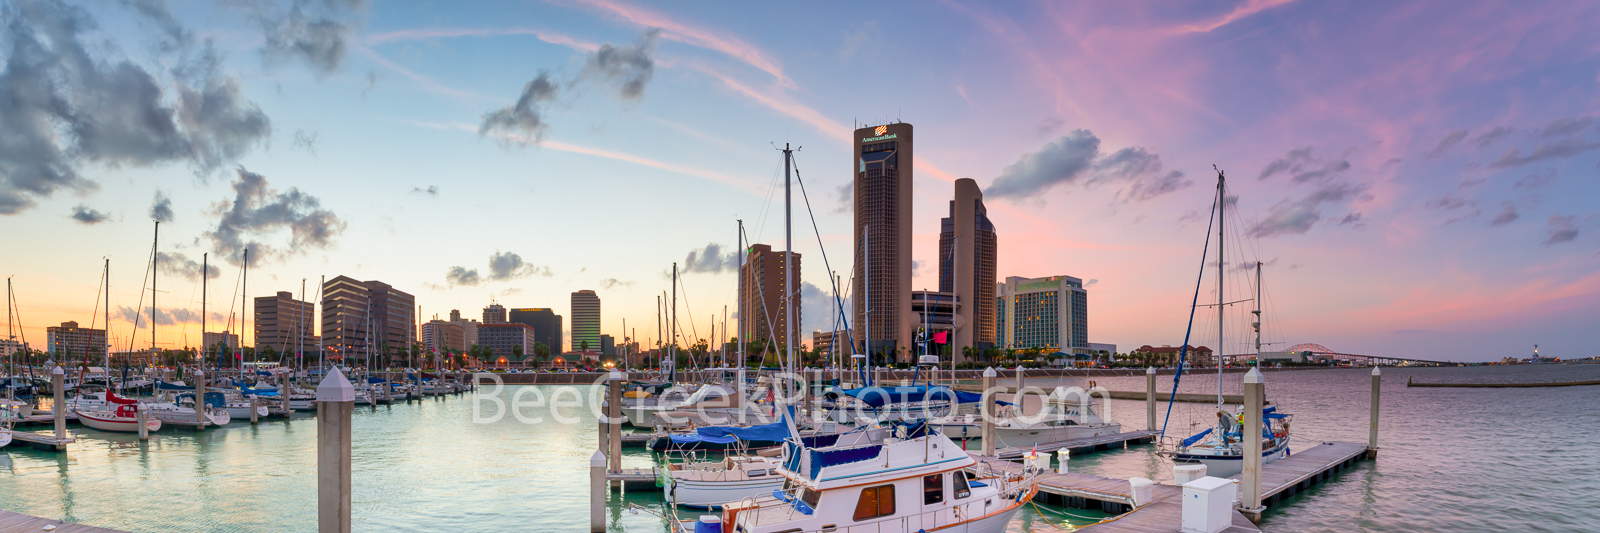 Corpus Christi Skyline Dusk - Corpus Christi is a city of over 500,000 people and got it name from a spanish explorer in 1519...